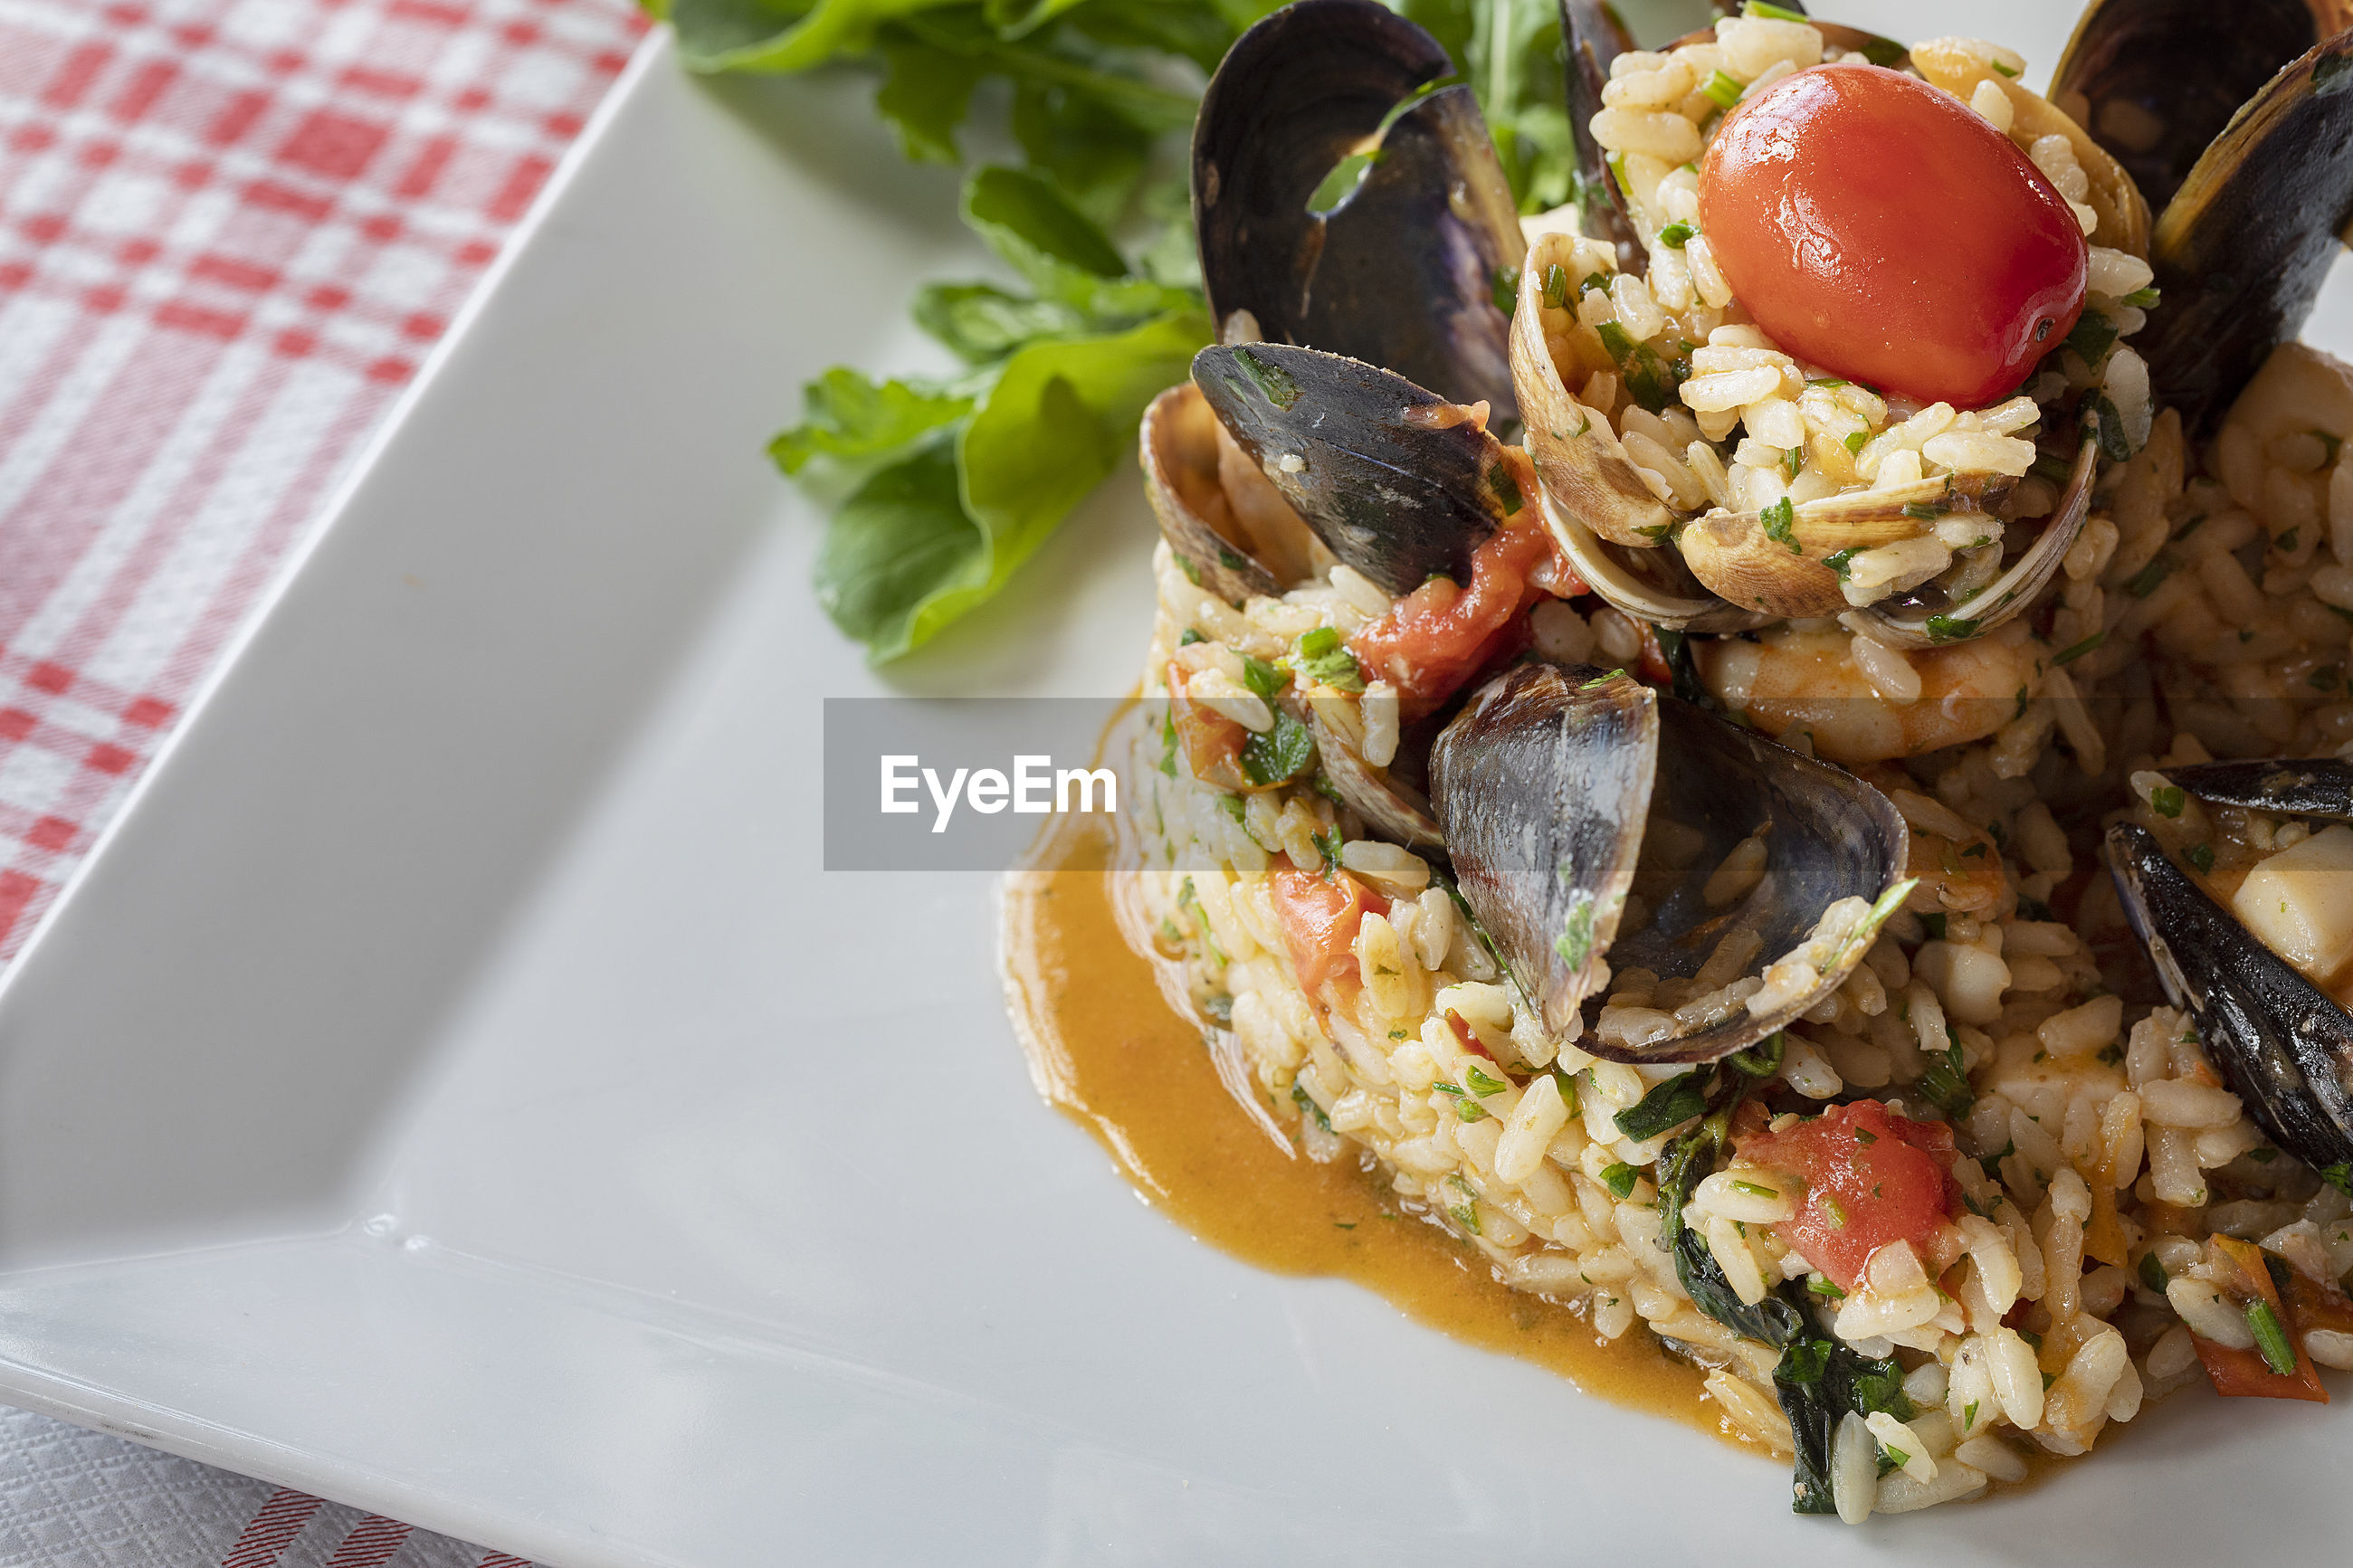 A plate of italian risotto with seafood.